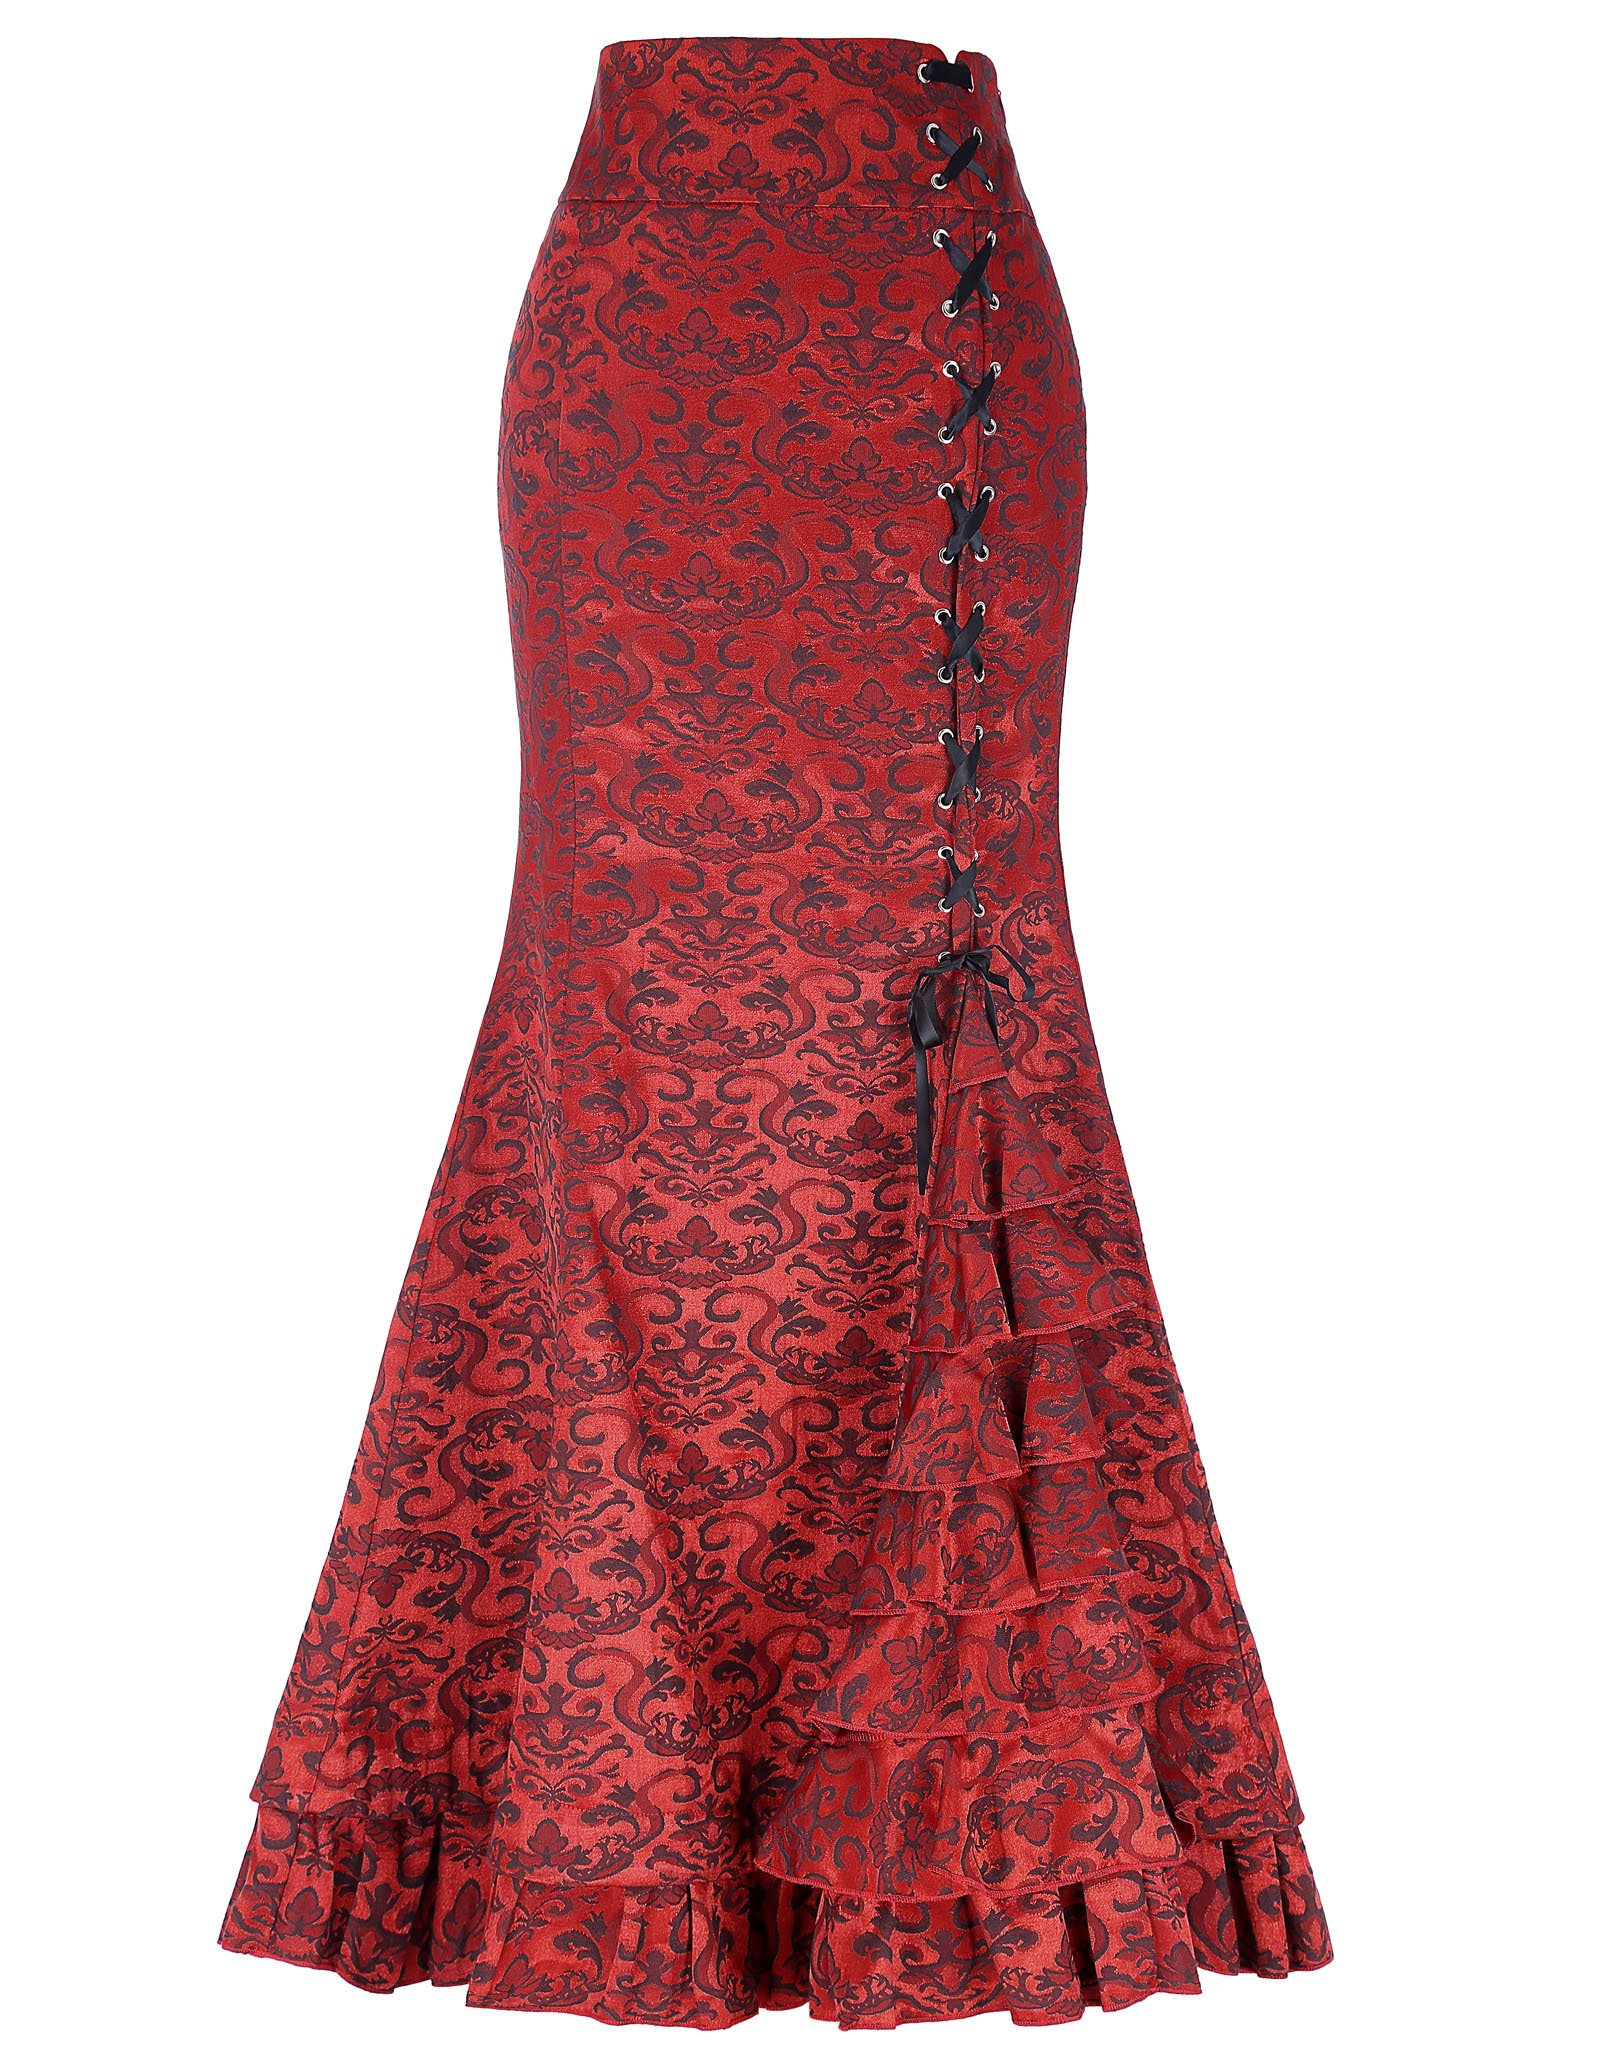 Belle Poque Red Victorian Steampunk Mermaid Skirt for Women Corset Style Size 8 Red BP204-2